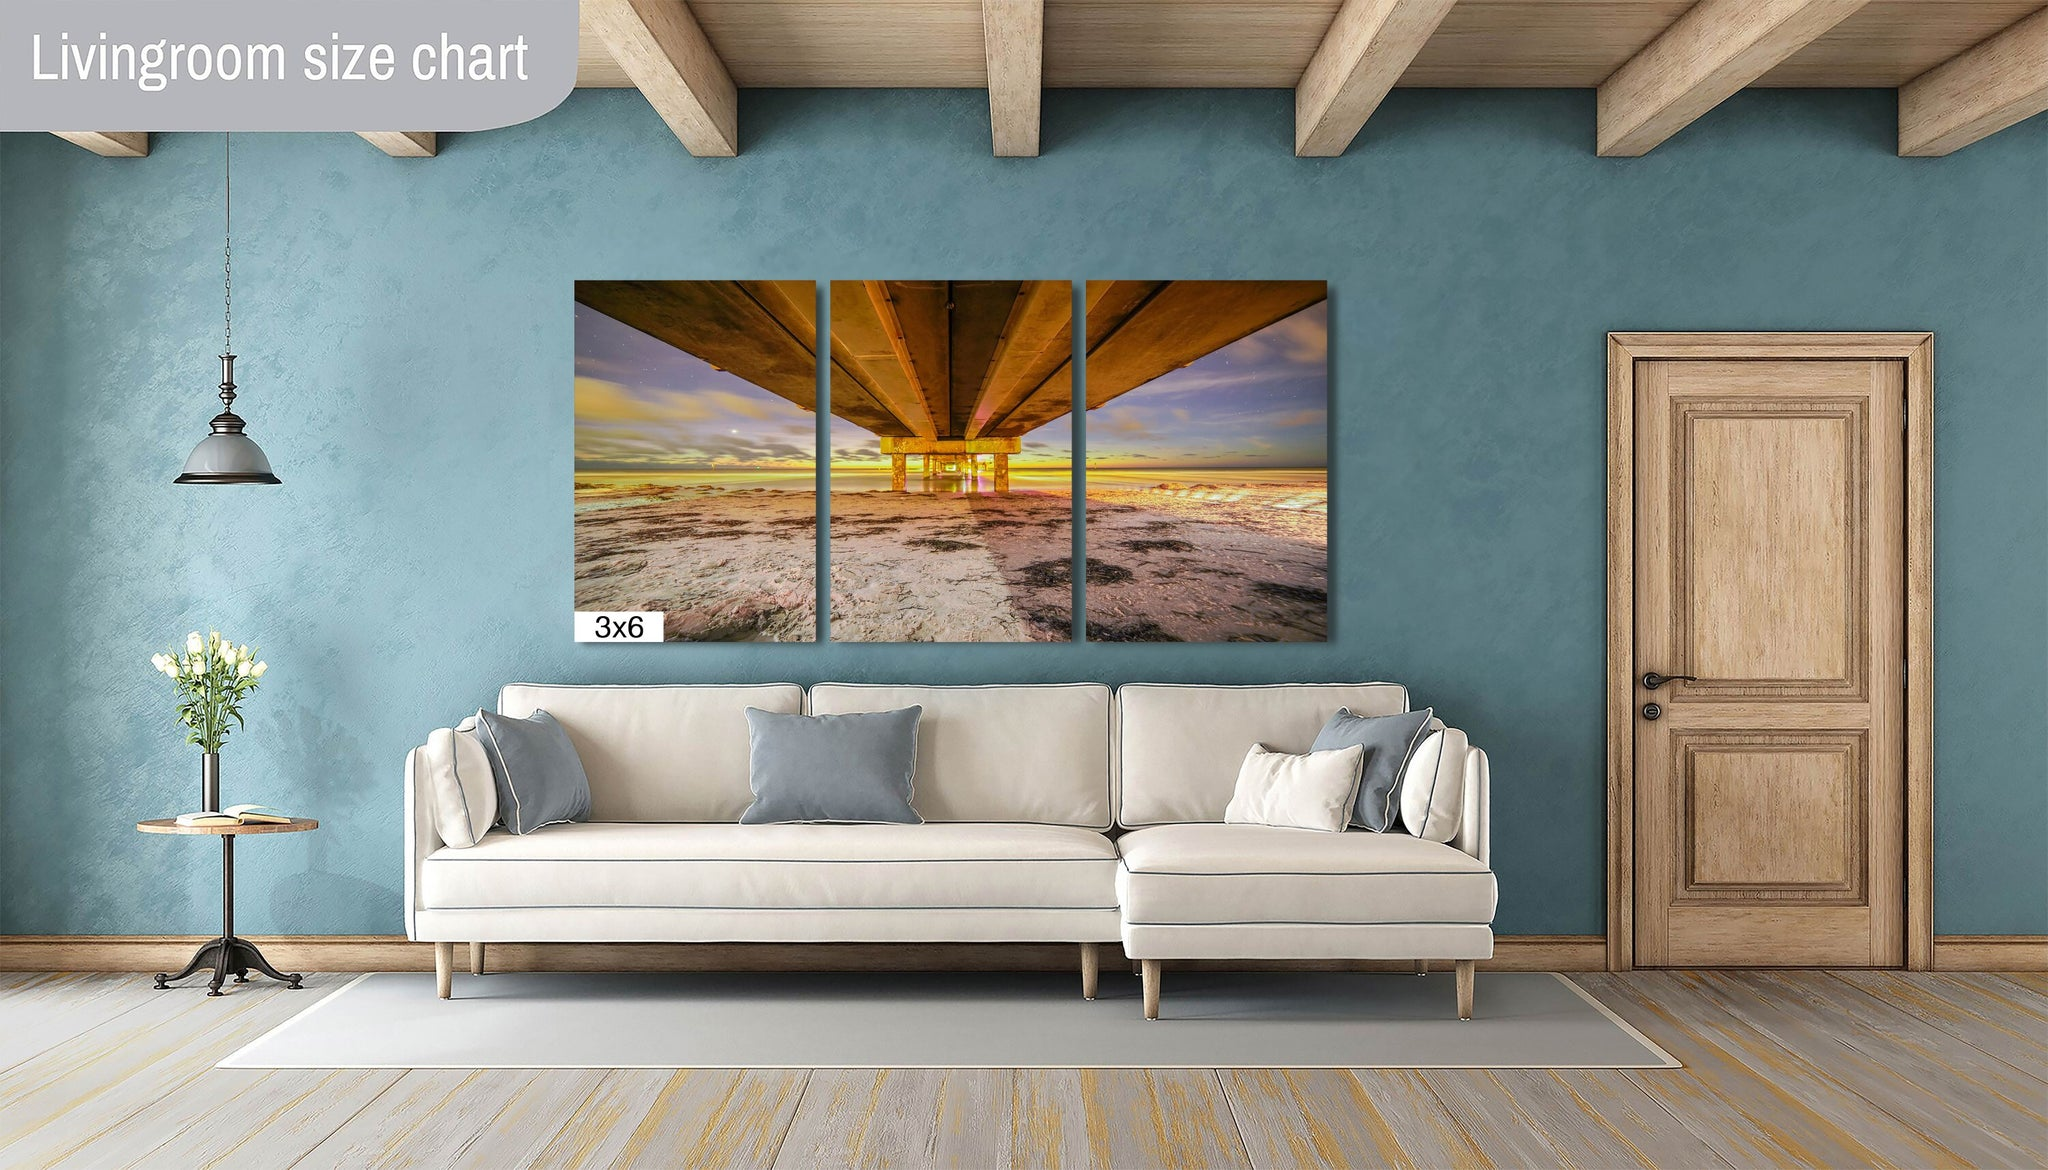 Pier 60 Clearwater Beach Florida Sunset Sandy Landmark Canvas Print Metal Wall Art Poster Bedroom Livingroom Wall Decor Home Seascape